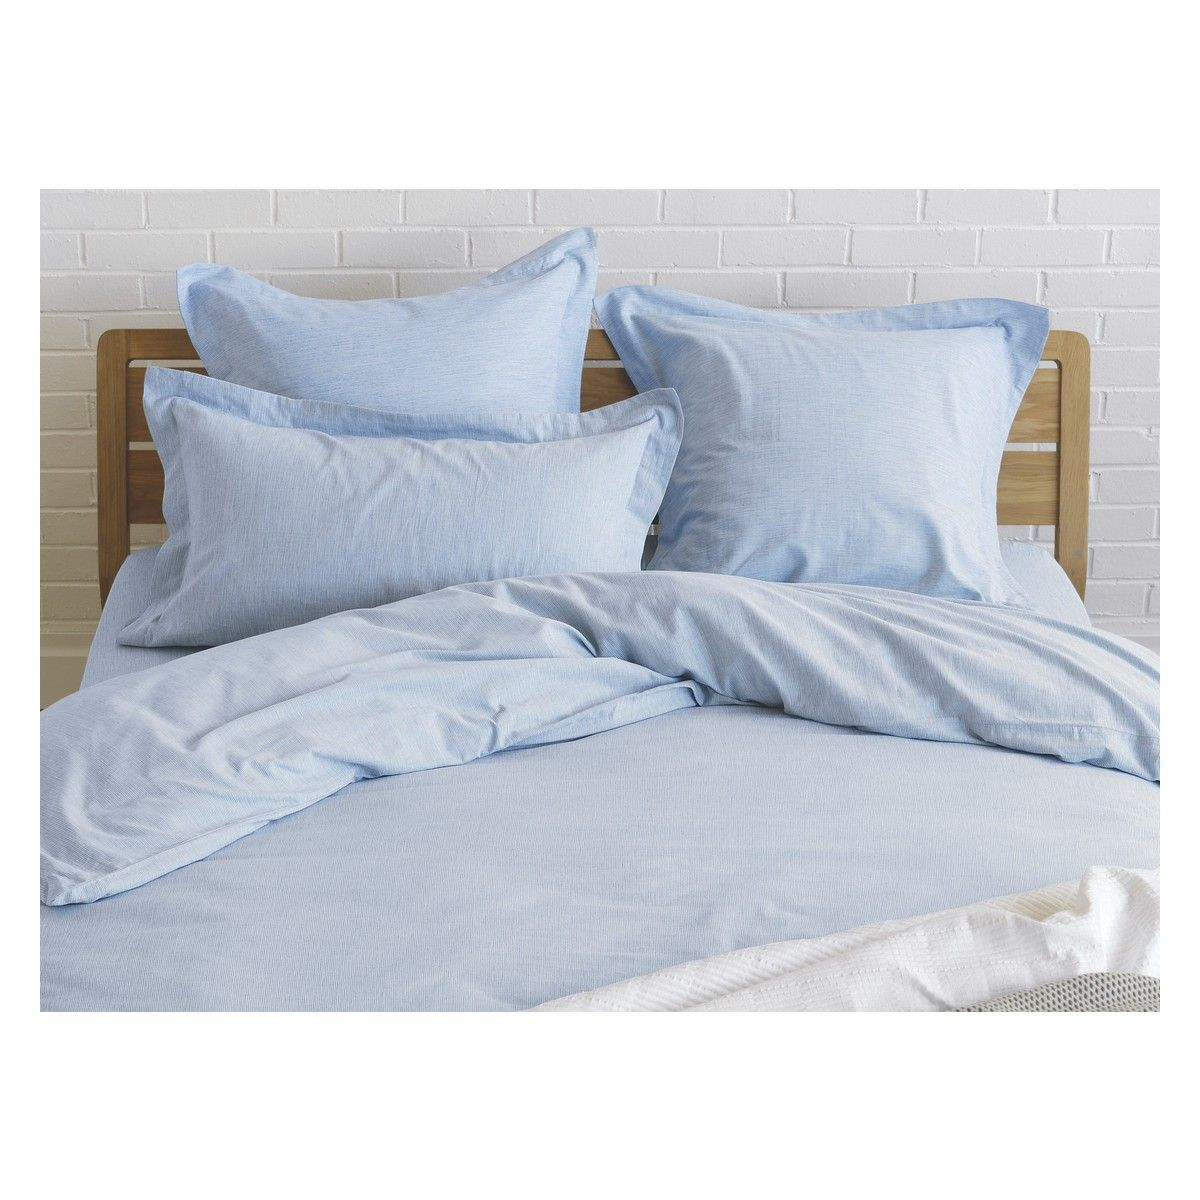 Skye Blue Egyptian Cotton Double Duvet Cover